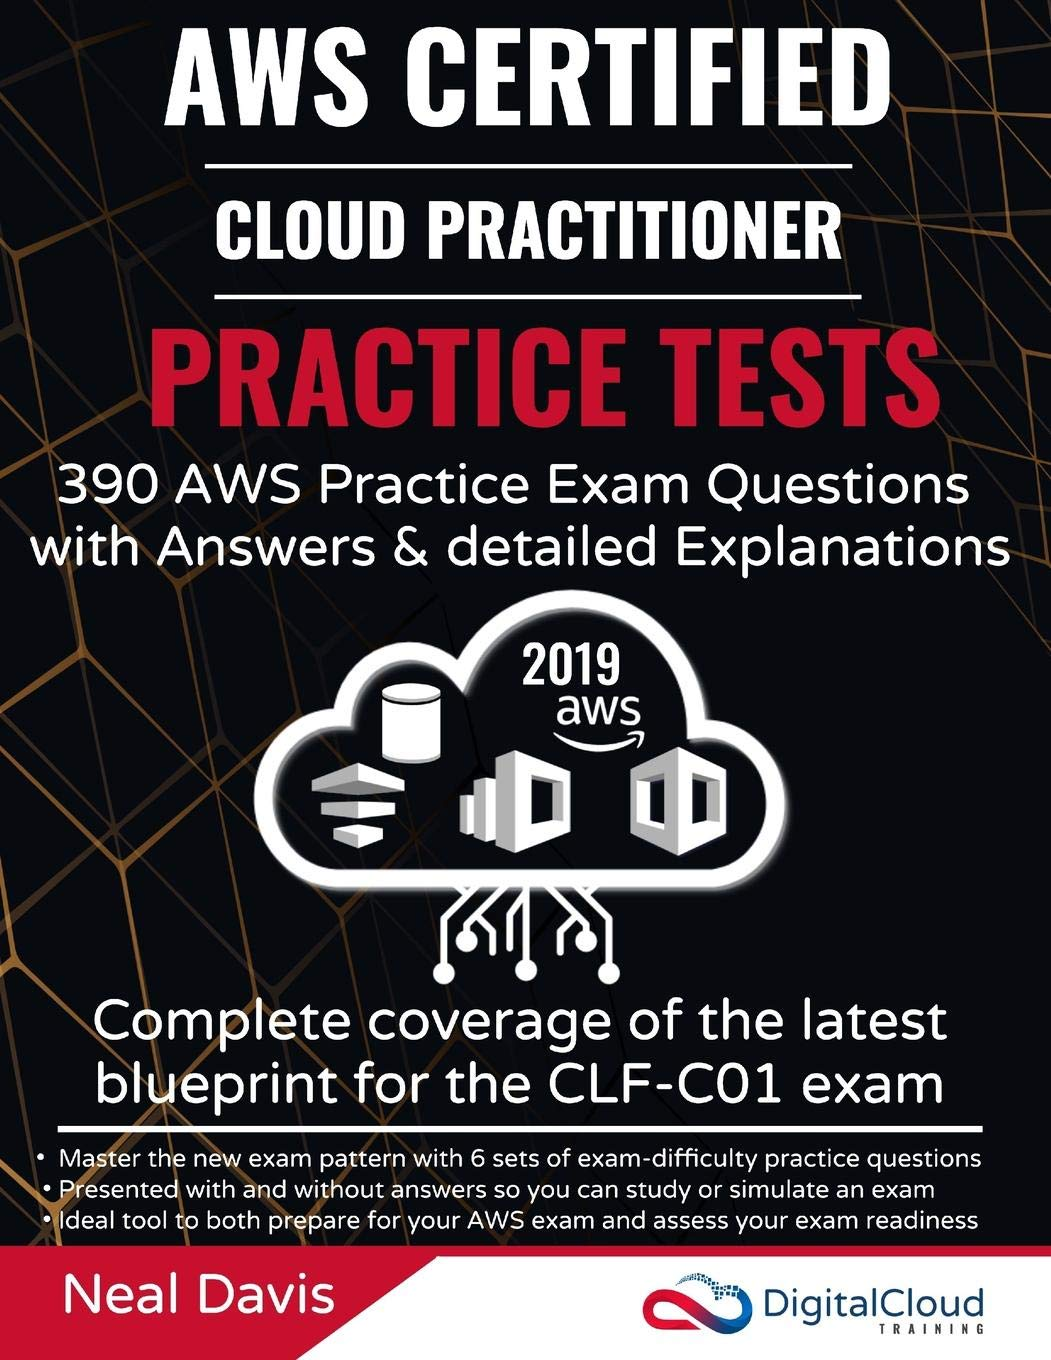 AWS Certified Cloud Practitioner Practice Tests 2019: 390